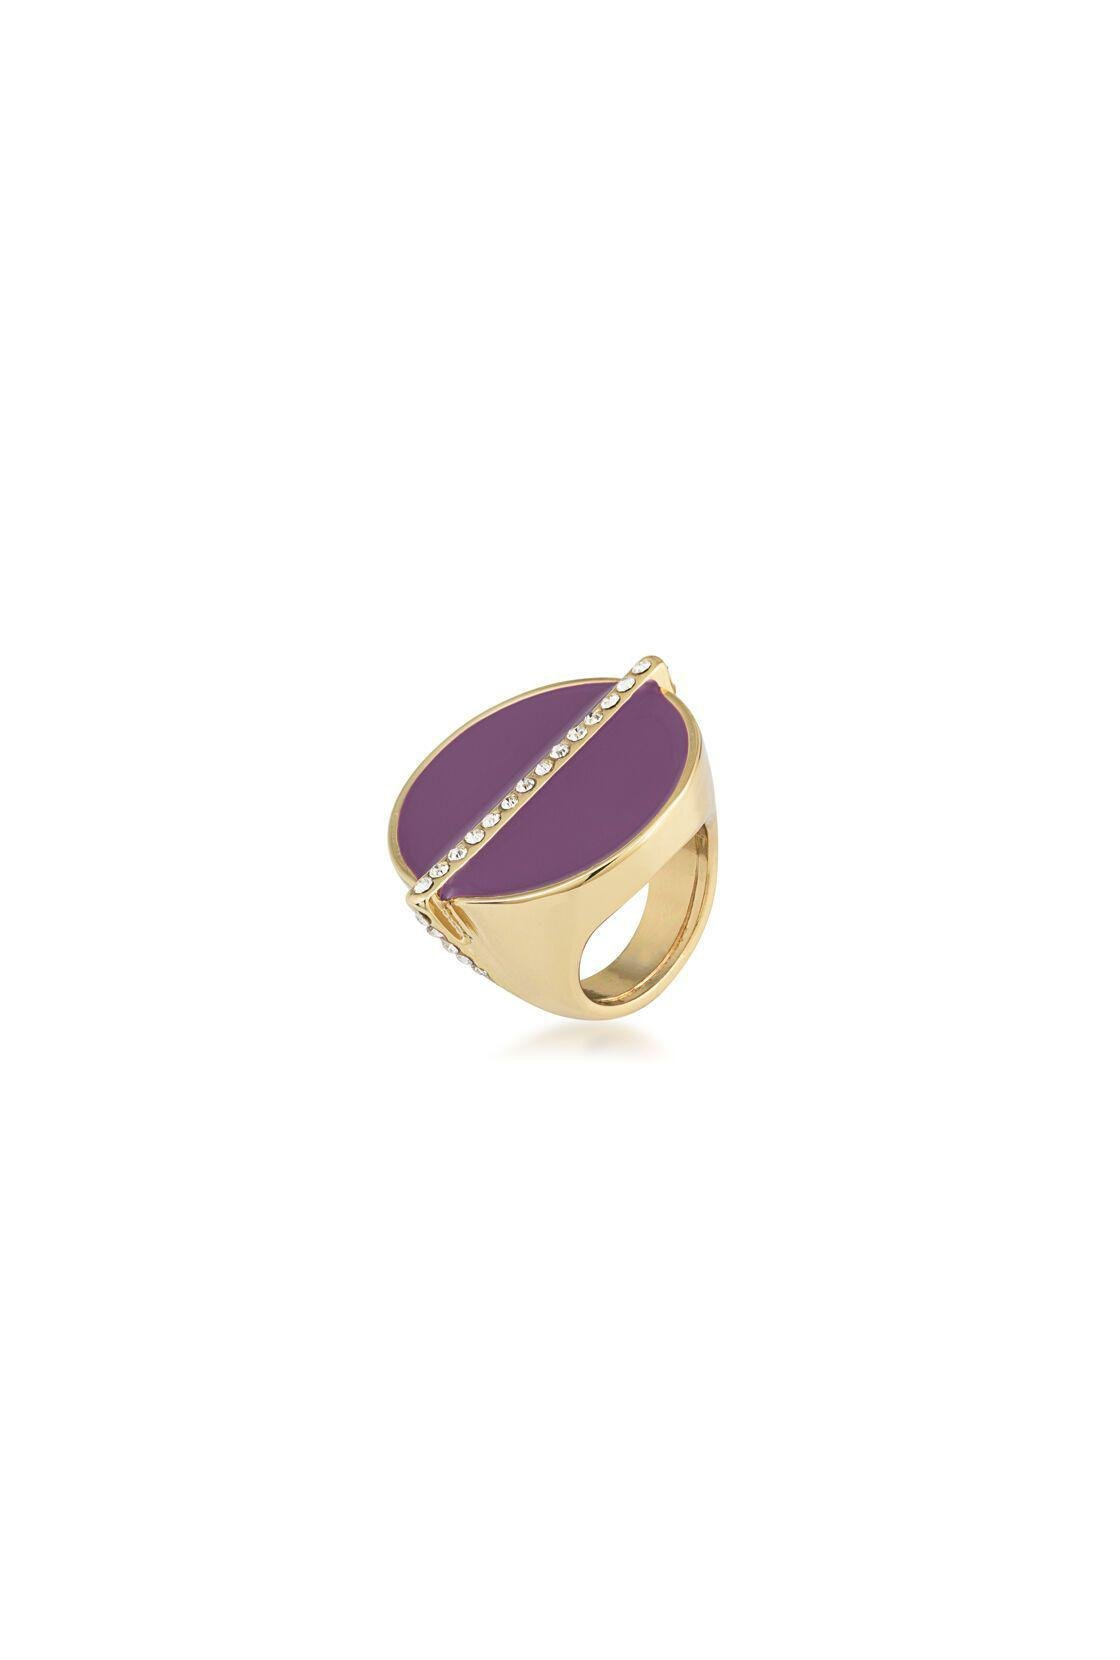 OVAL CAB RING WITH PAVE DETAIL